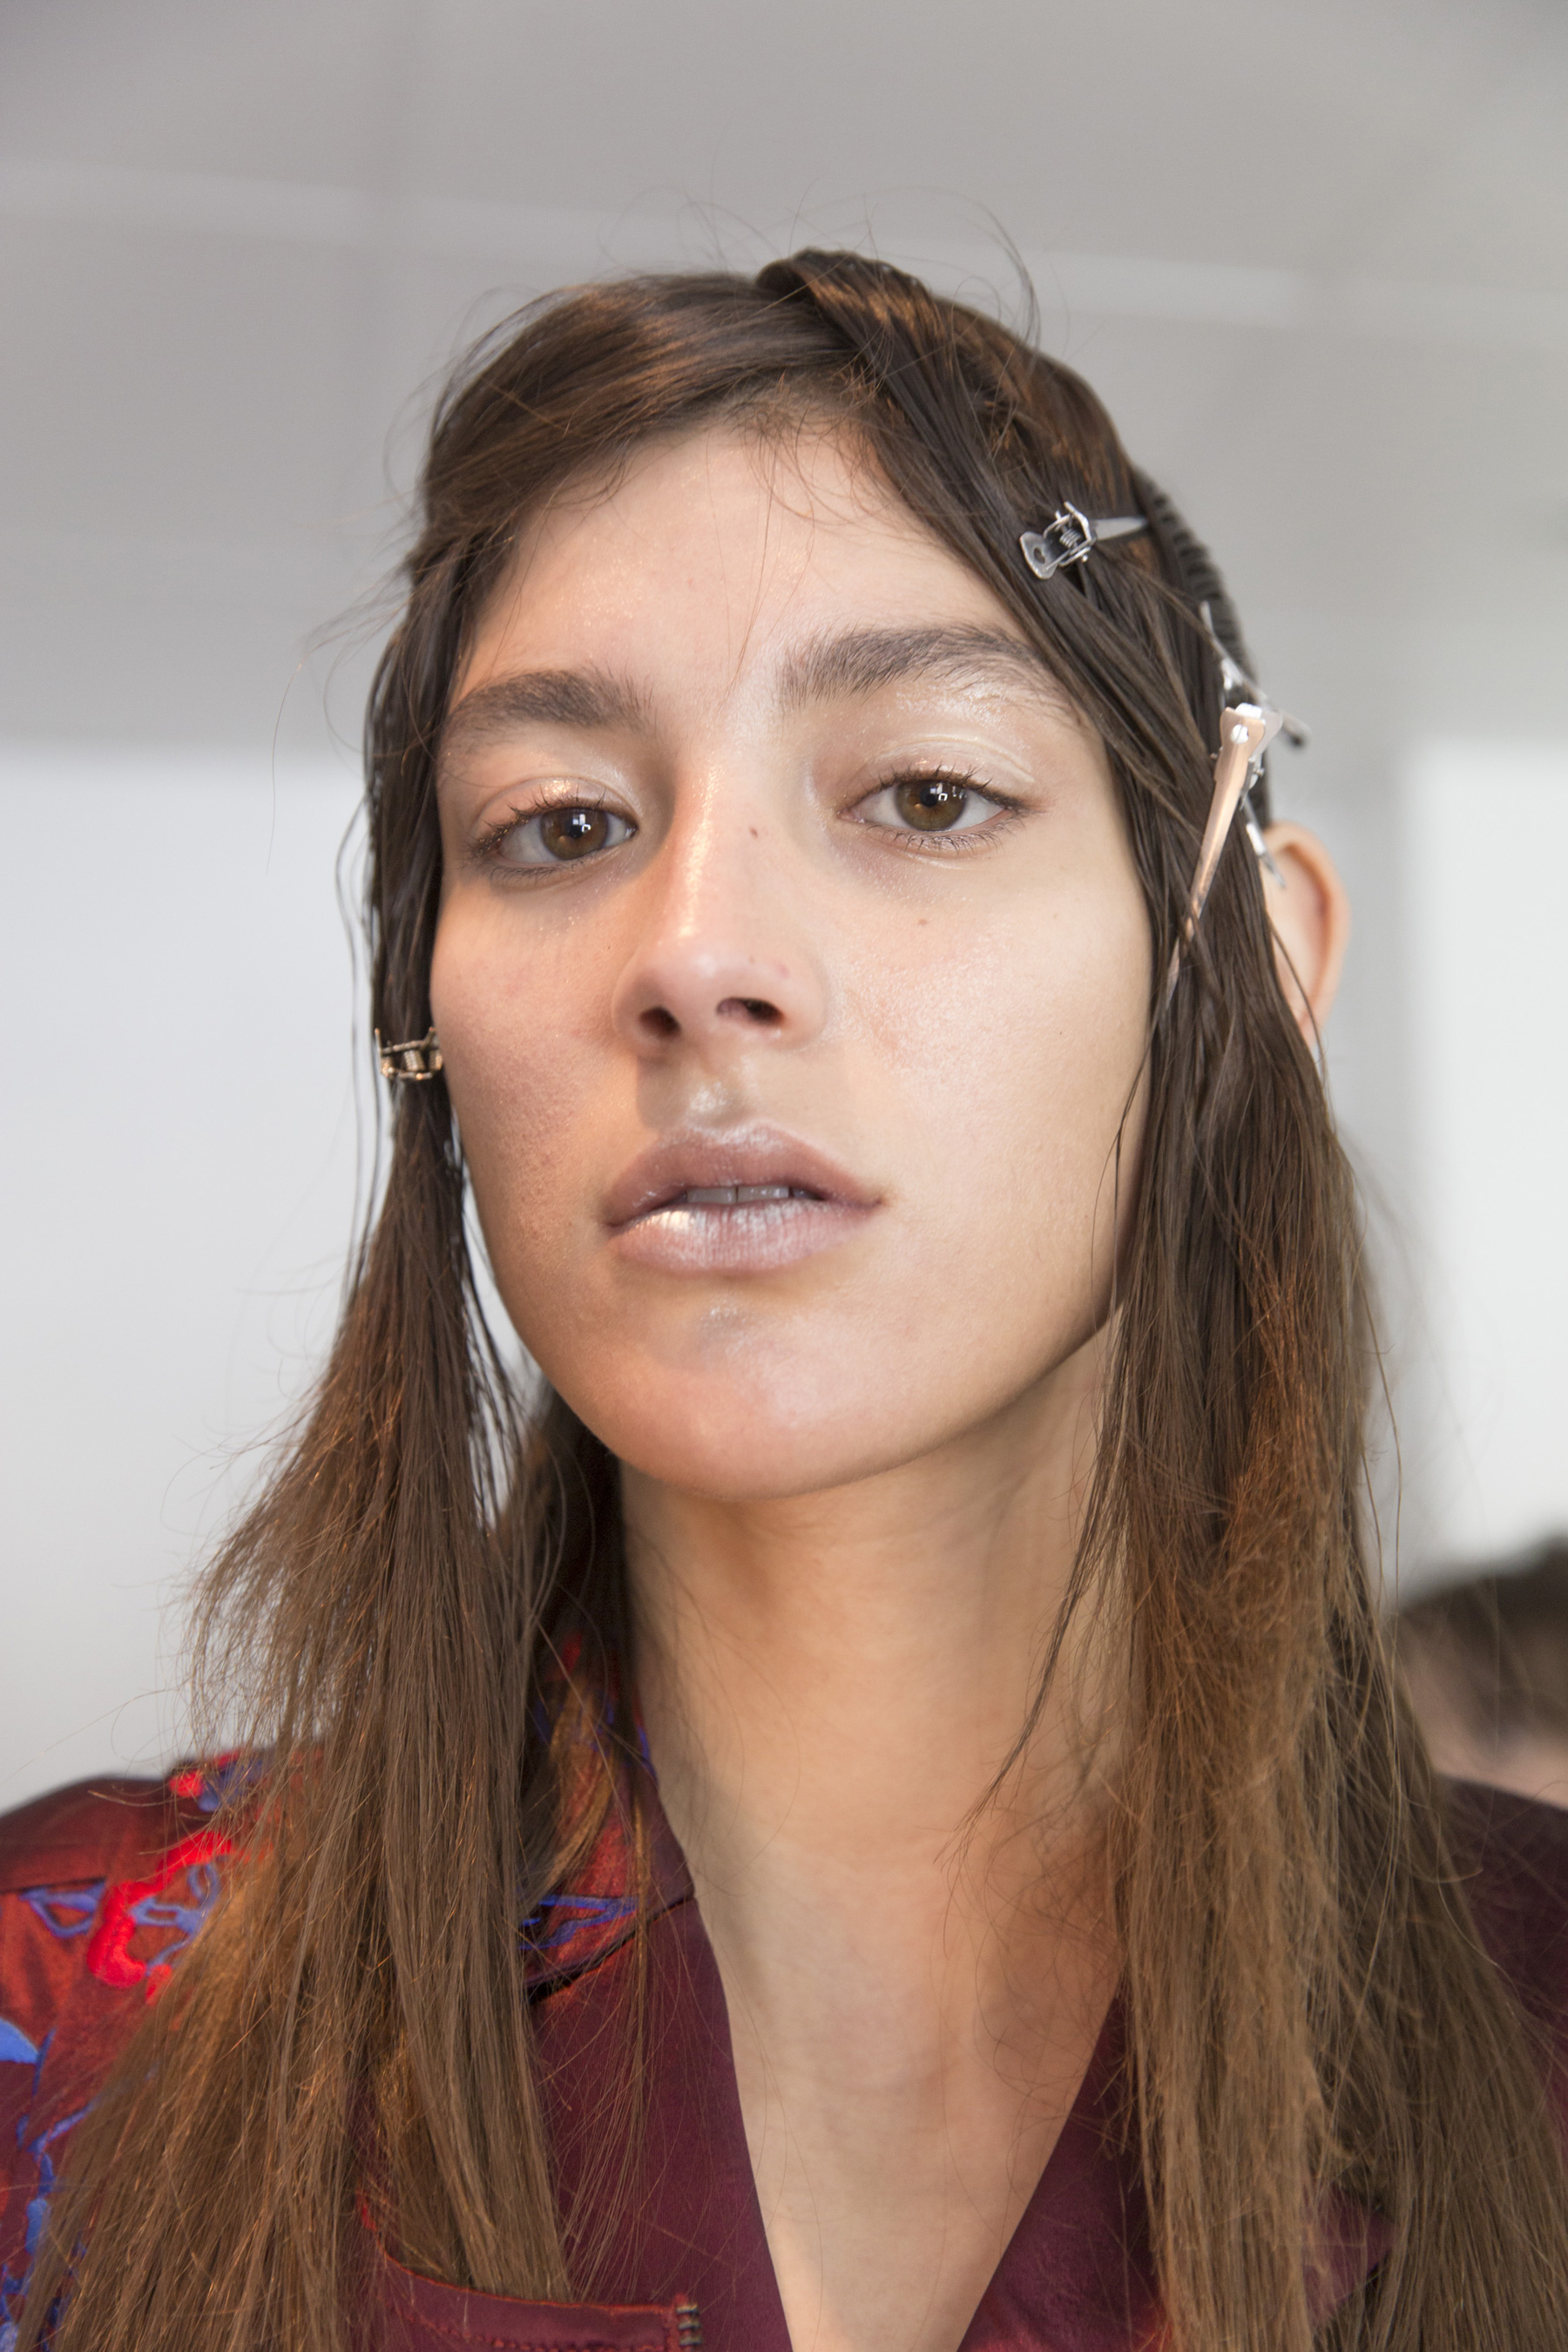 Ximonlee Spring 2019 Fashion Show Backstage Beauty